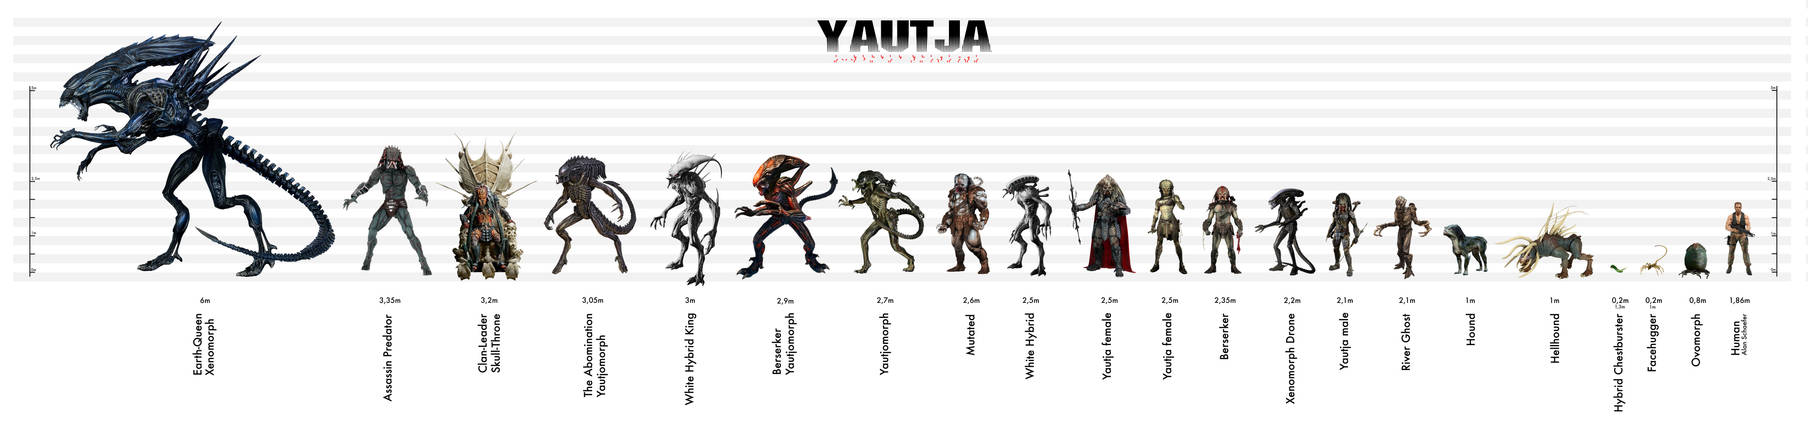 Yautja Size Chart Expanded Universe By Risen From The Ruins On Deviantart